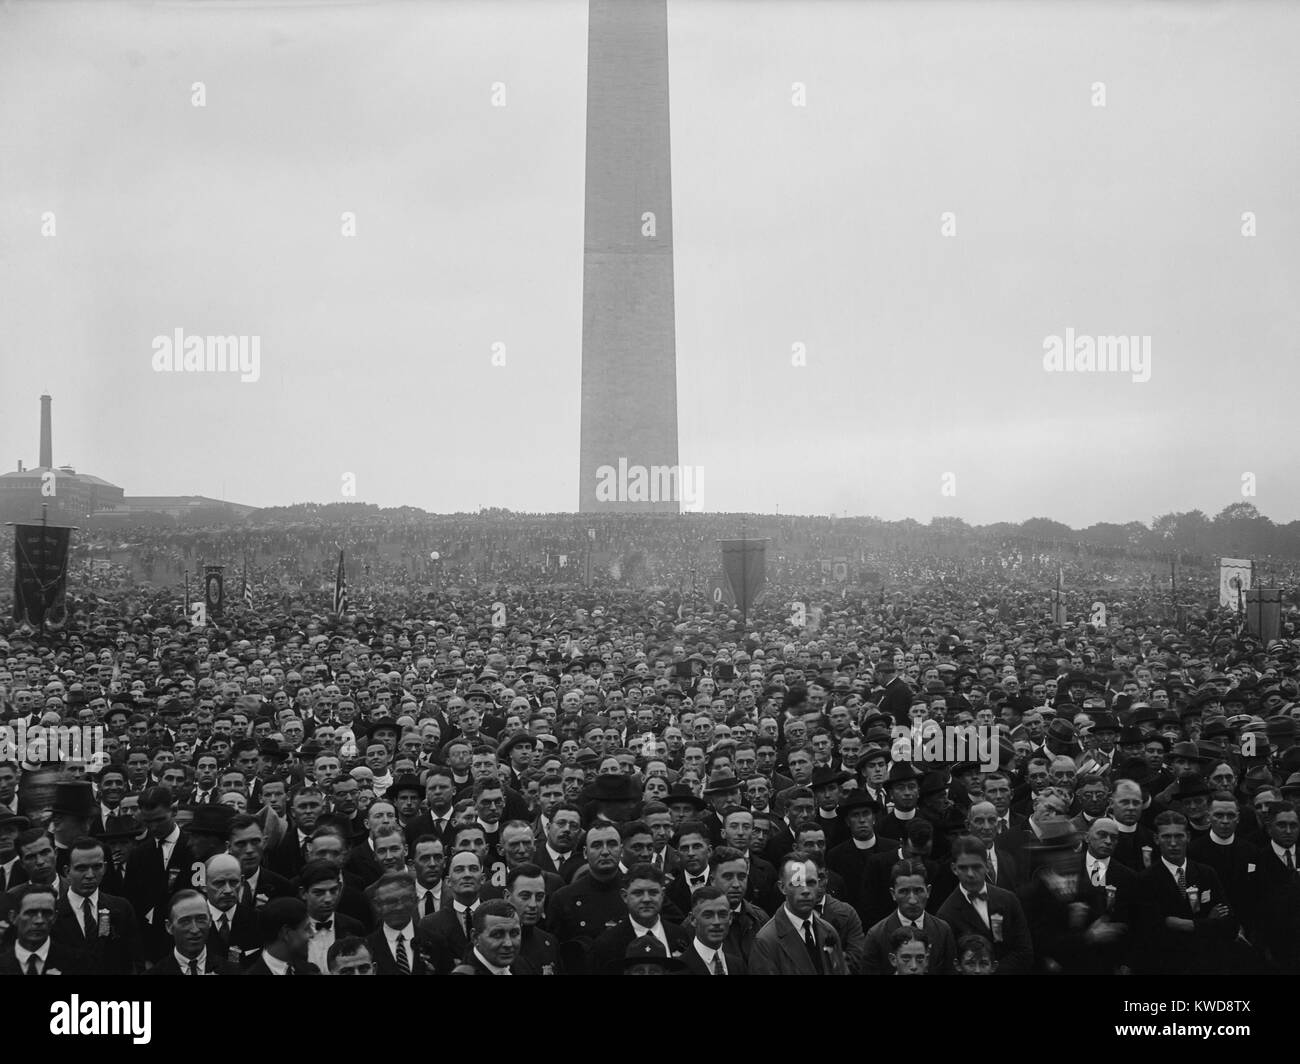 200,000 of the 1,500,000 Holy Name men who took part in a Washington, D.C. parade. On Sept 21, 1924, they commemorated - Stock Image